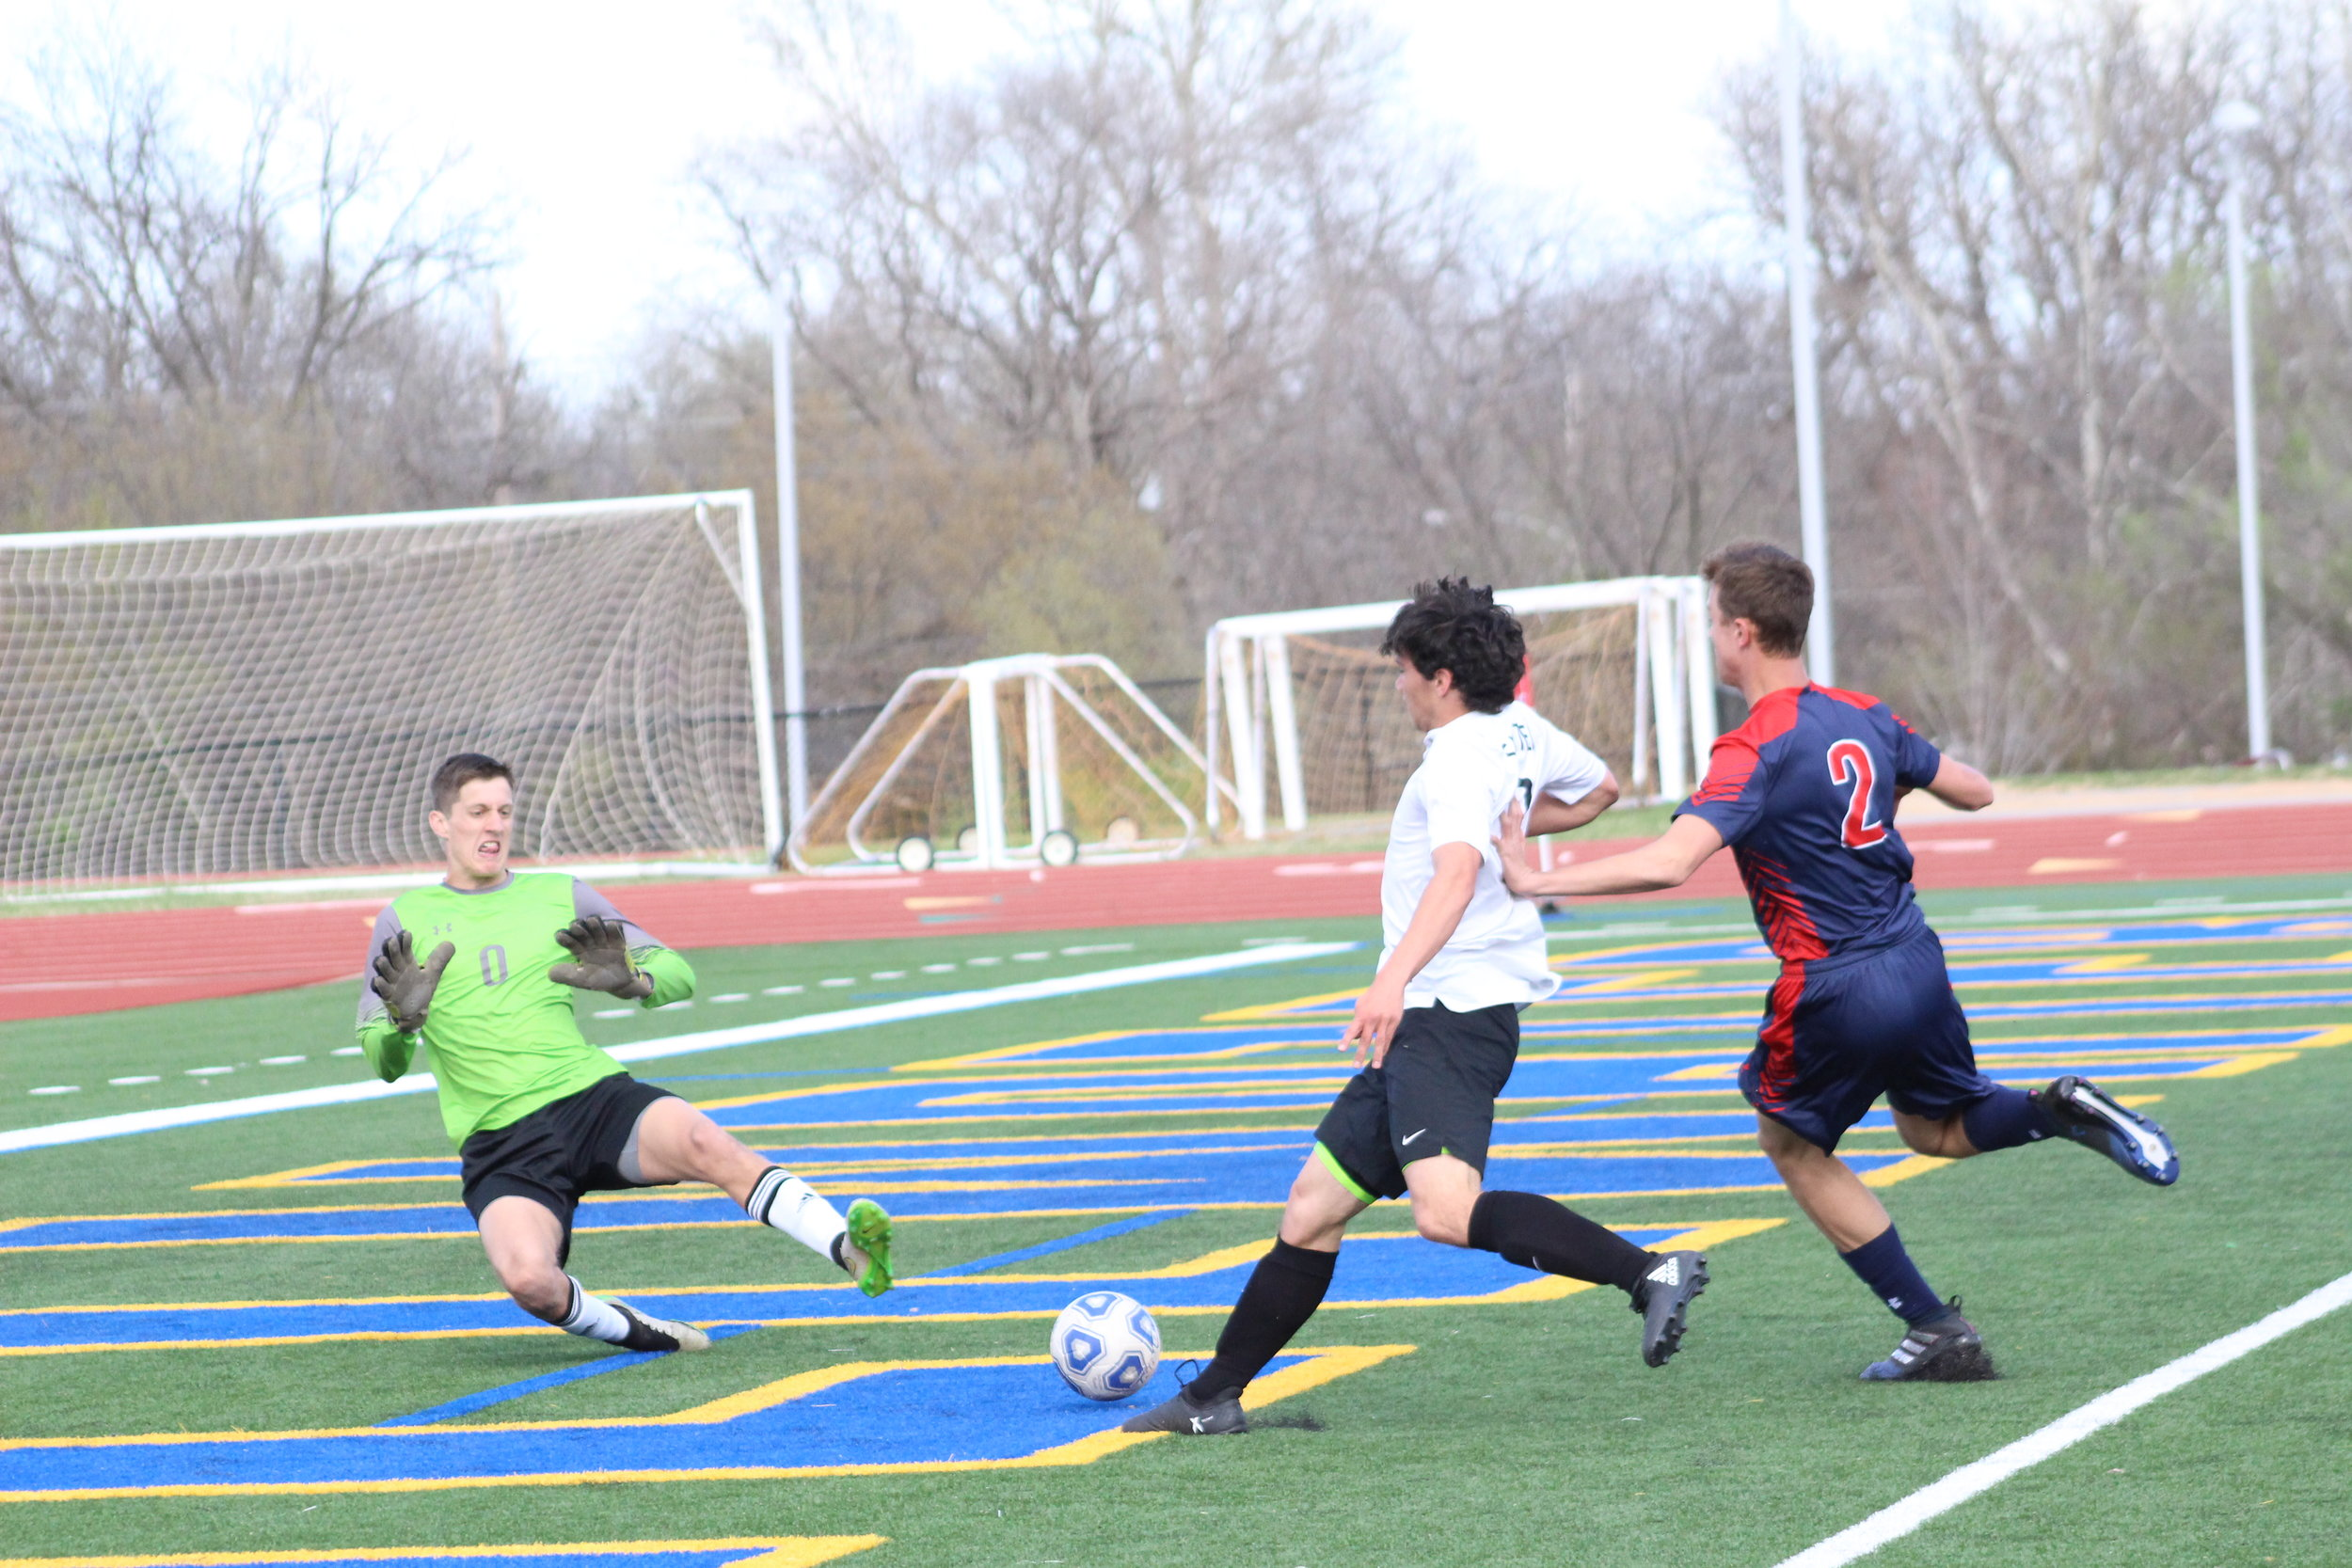 CPHS Senior Cody Gurley scored his first goal of the season in a 3-1 loss to Ponca City. (Photo: Scott Emigh).